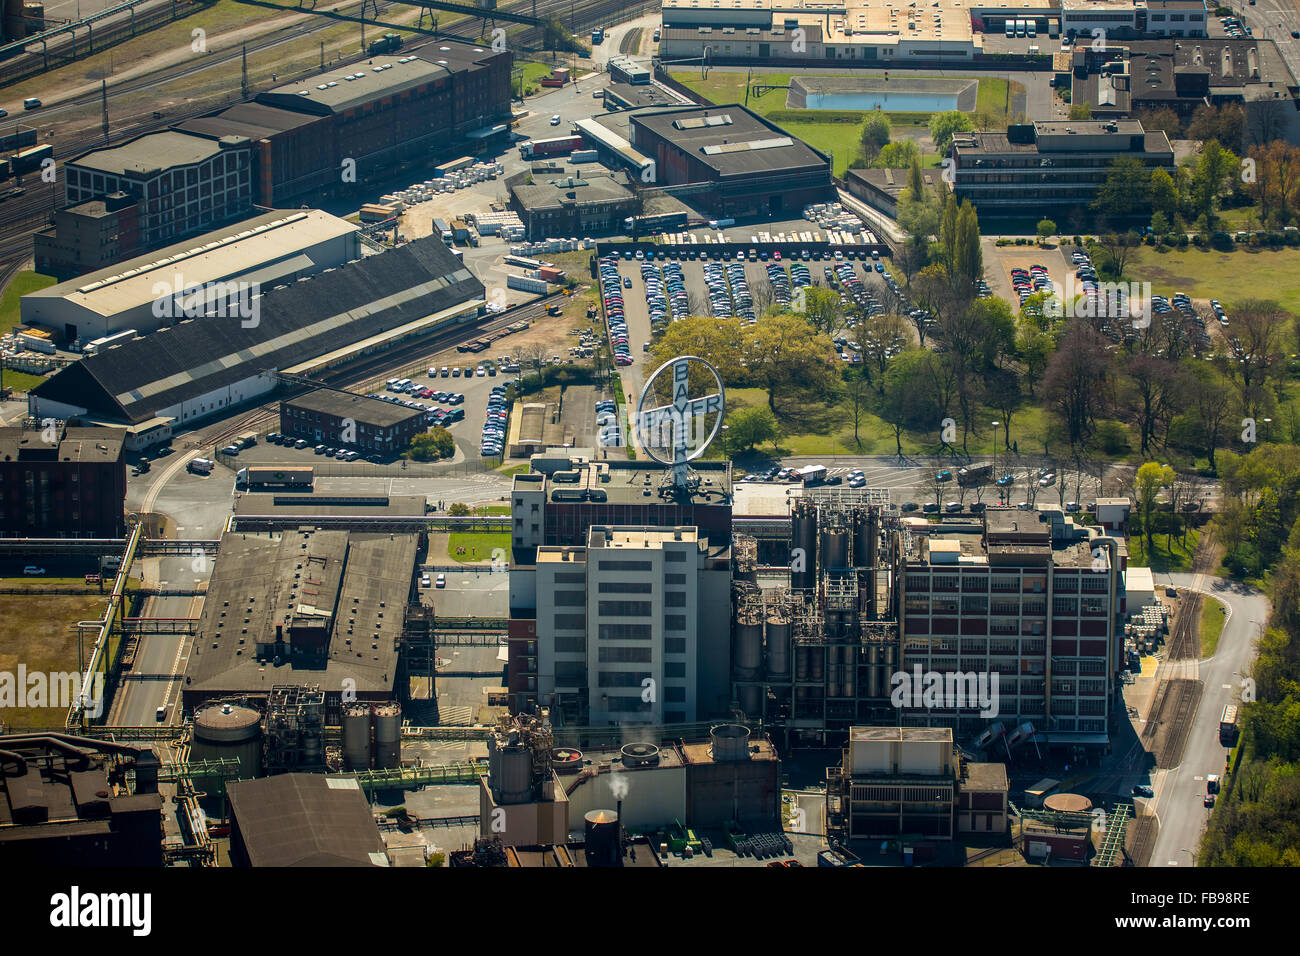 Aerial view, Krefeld Bayer Uerdingen, Duisburg, Ruhr area, Duisburg-North, North Rhine Westphalia, Germany, Europe, Stock Photo